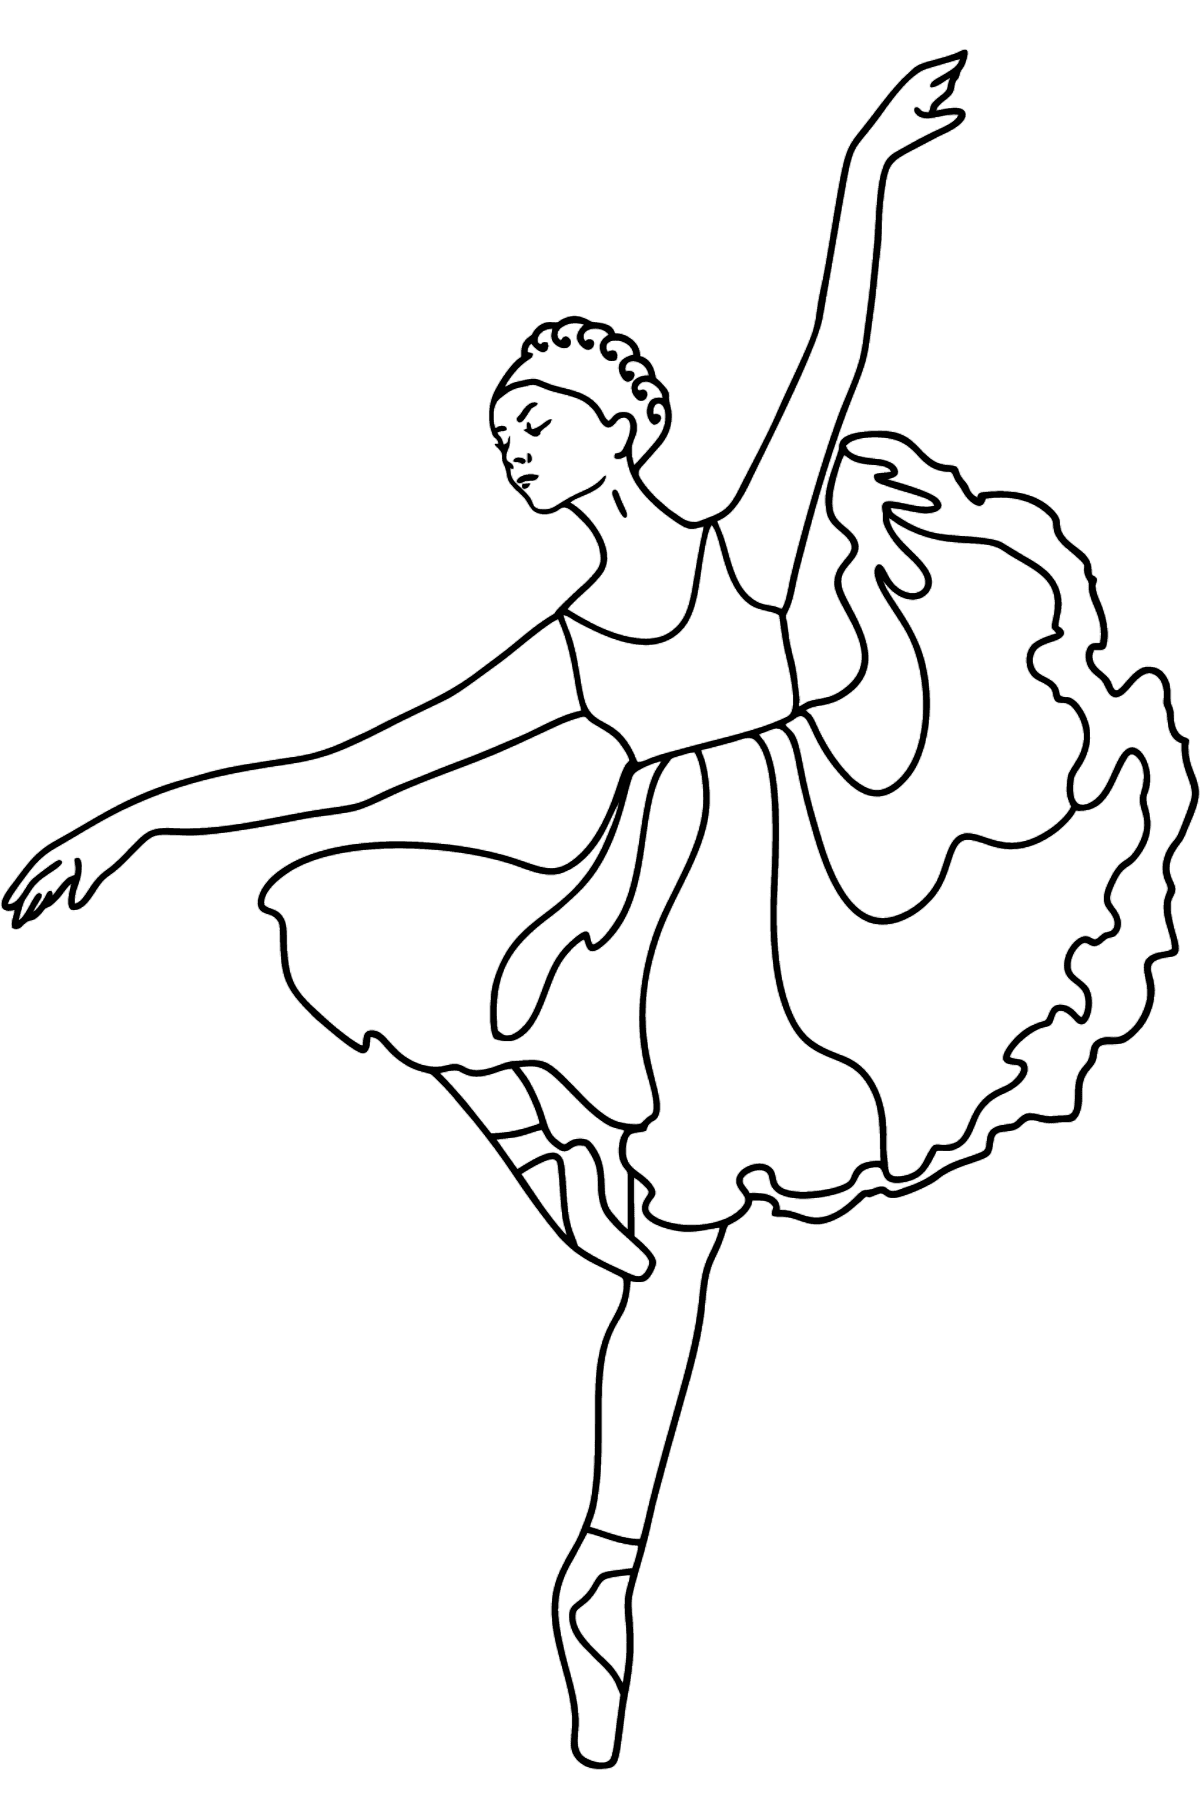 Ballerina in Lilac Dress coloring page - Coloring Pages for Kids